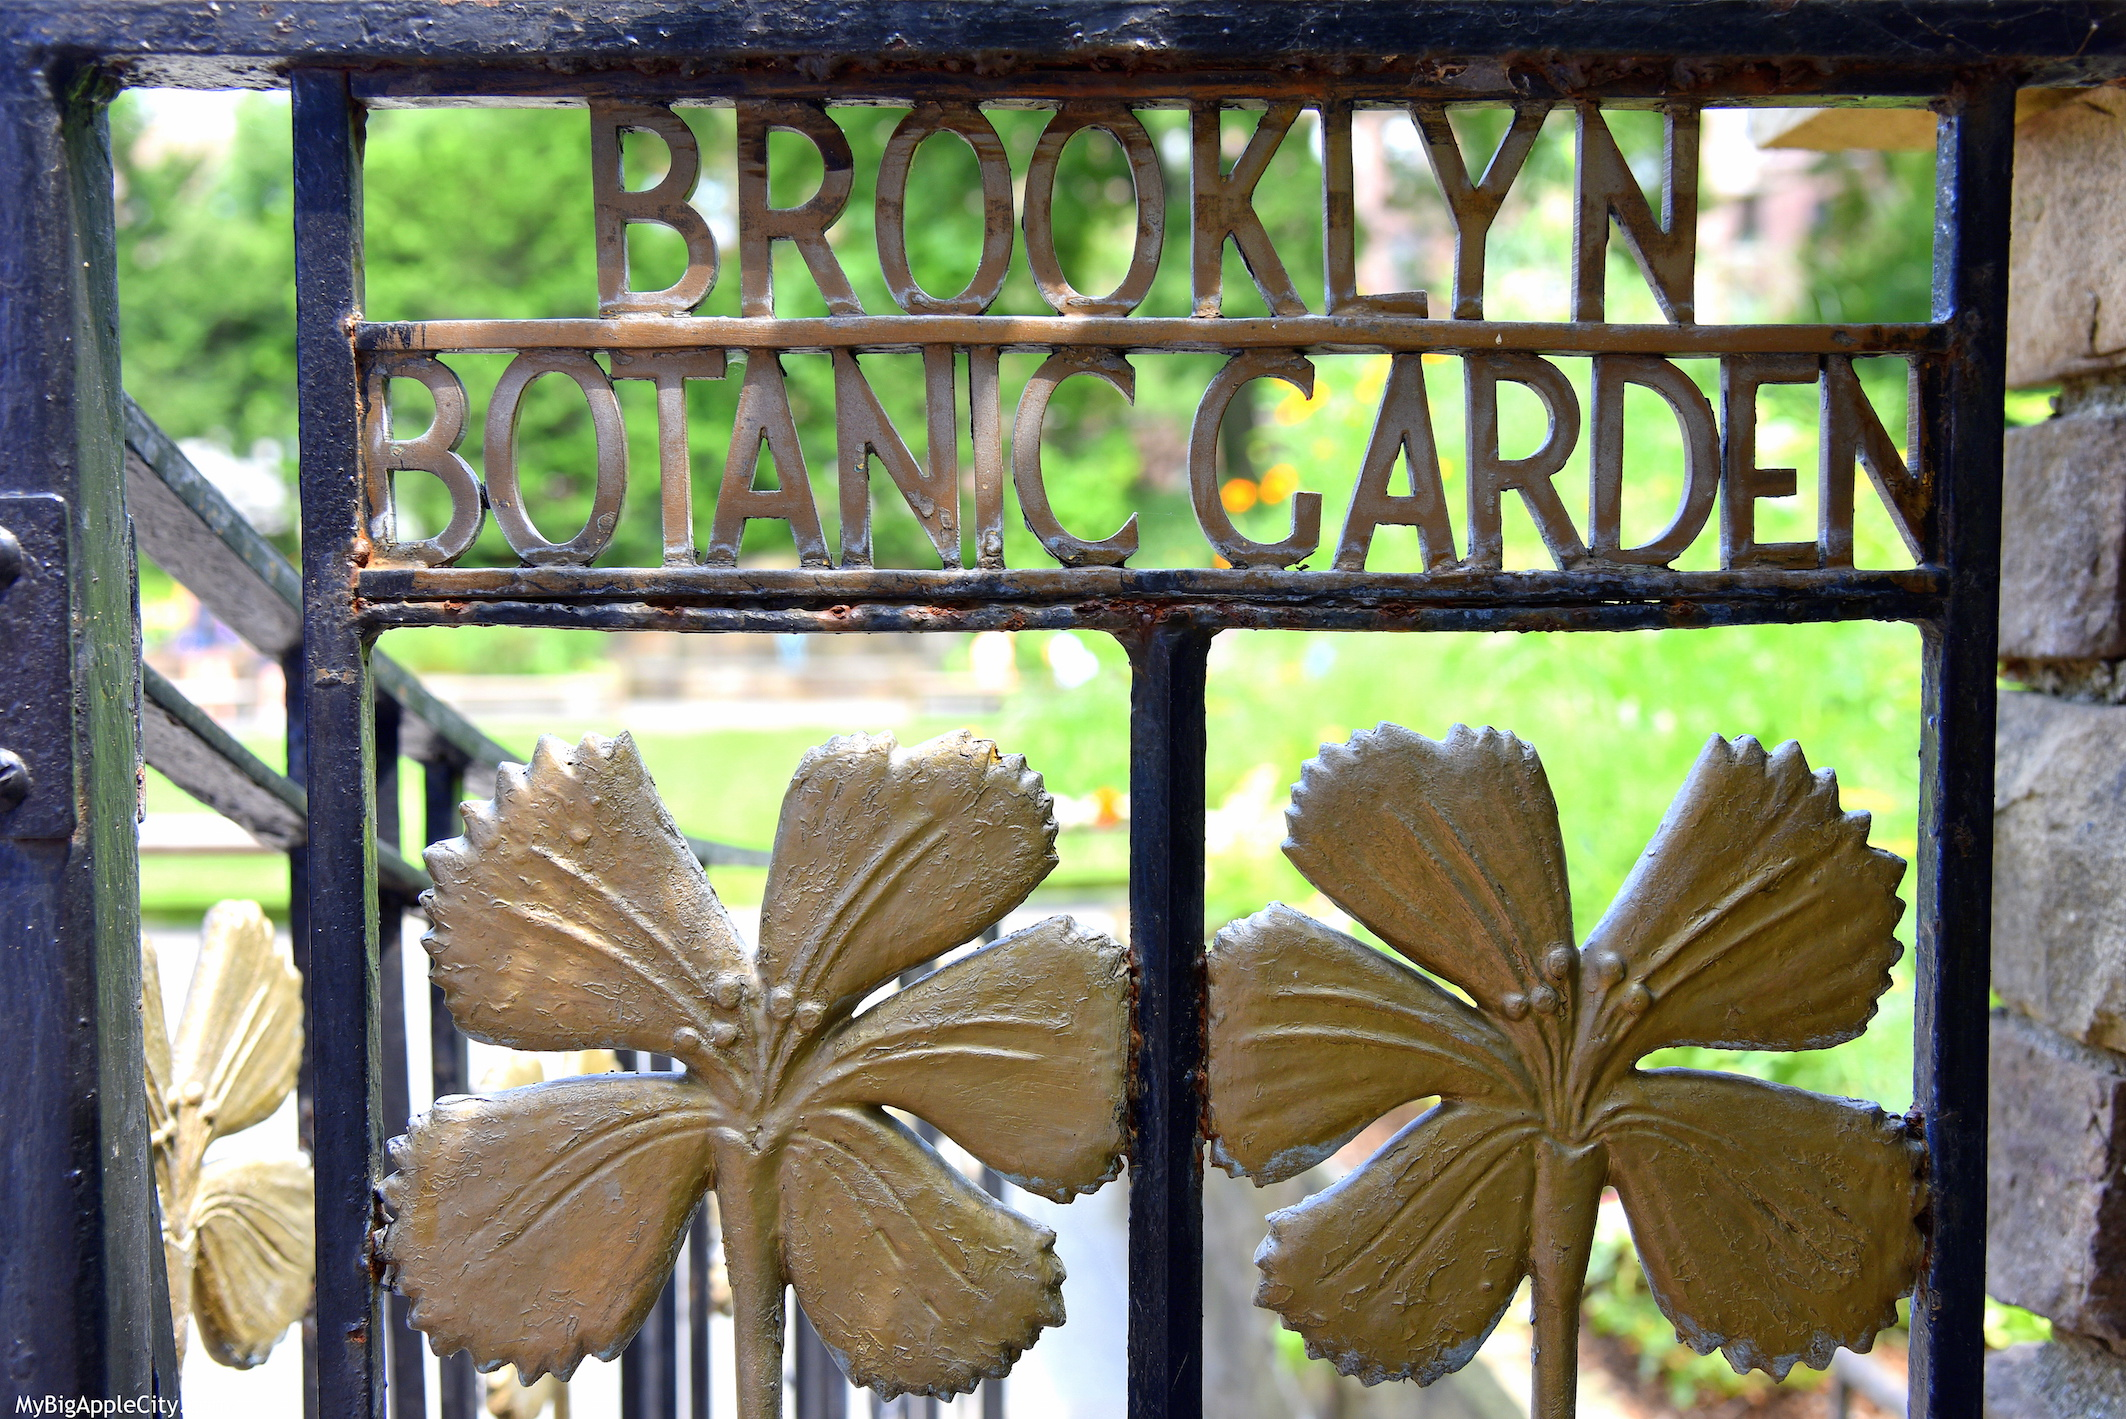 Free-Brooklyn-Botanical-Garden-New-York-Travel-MyBigAppleCity